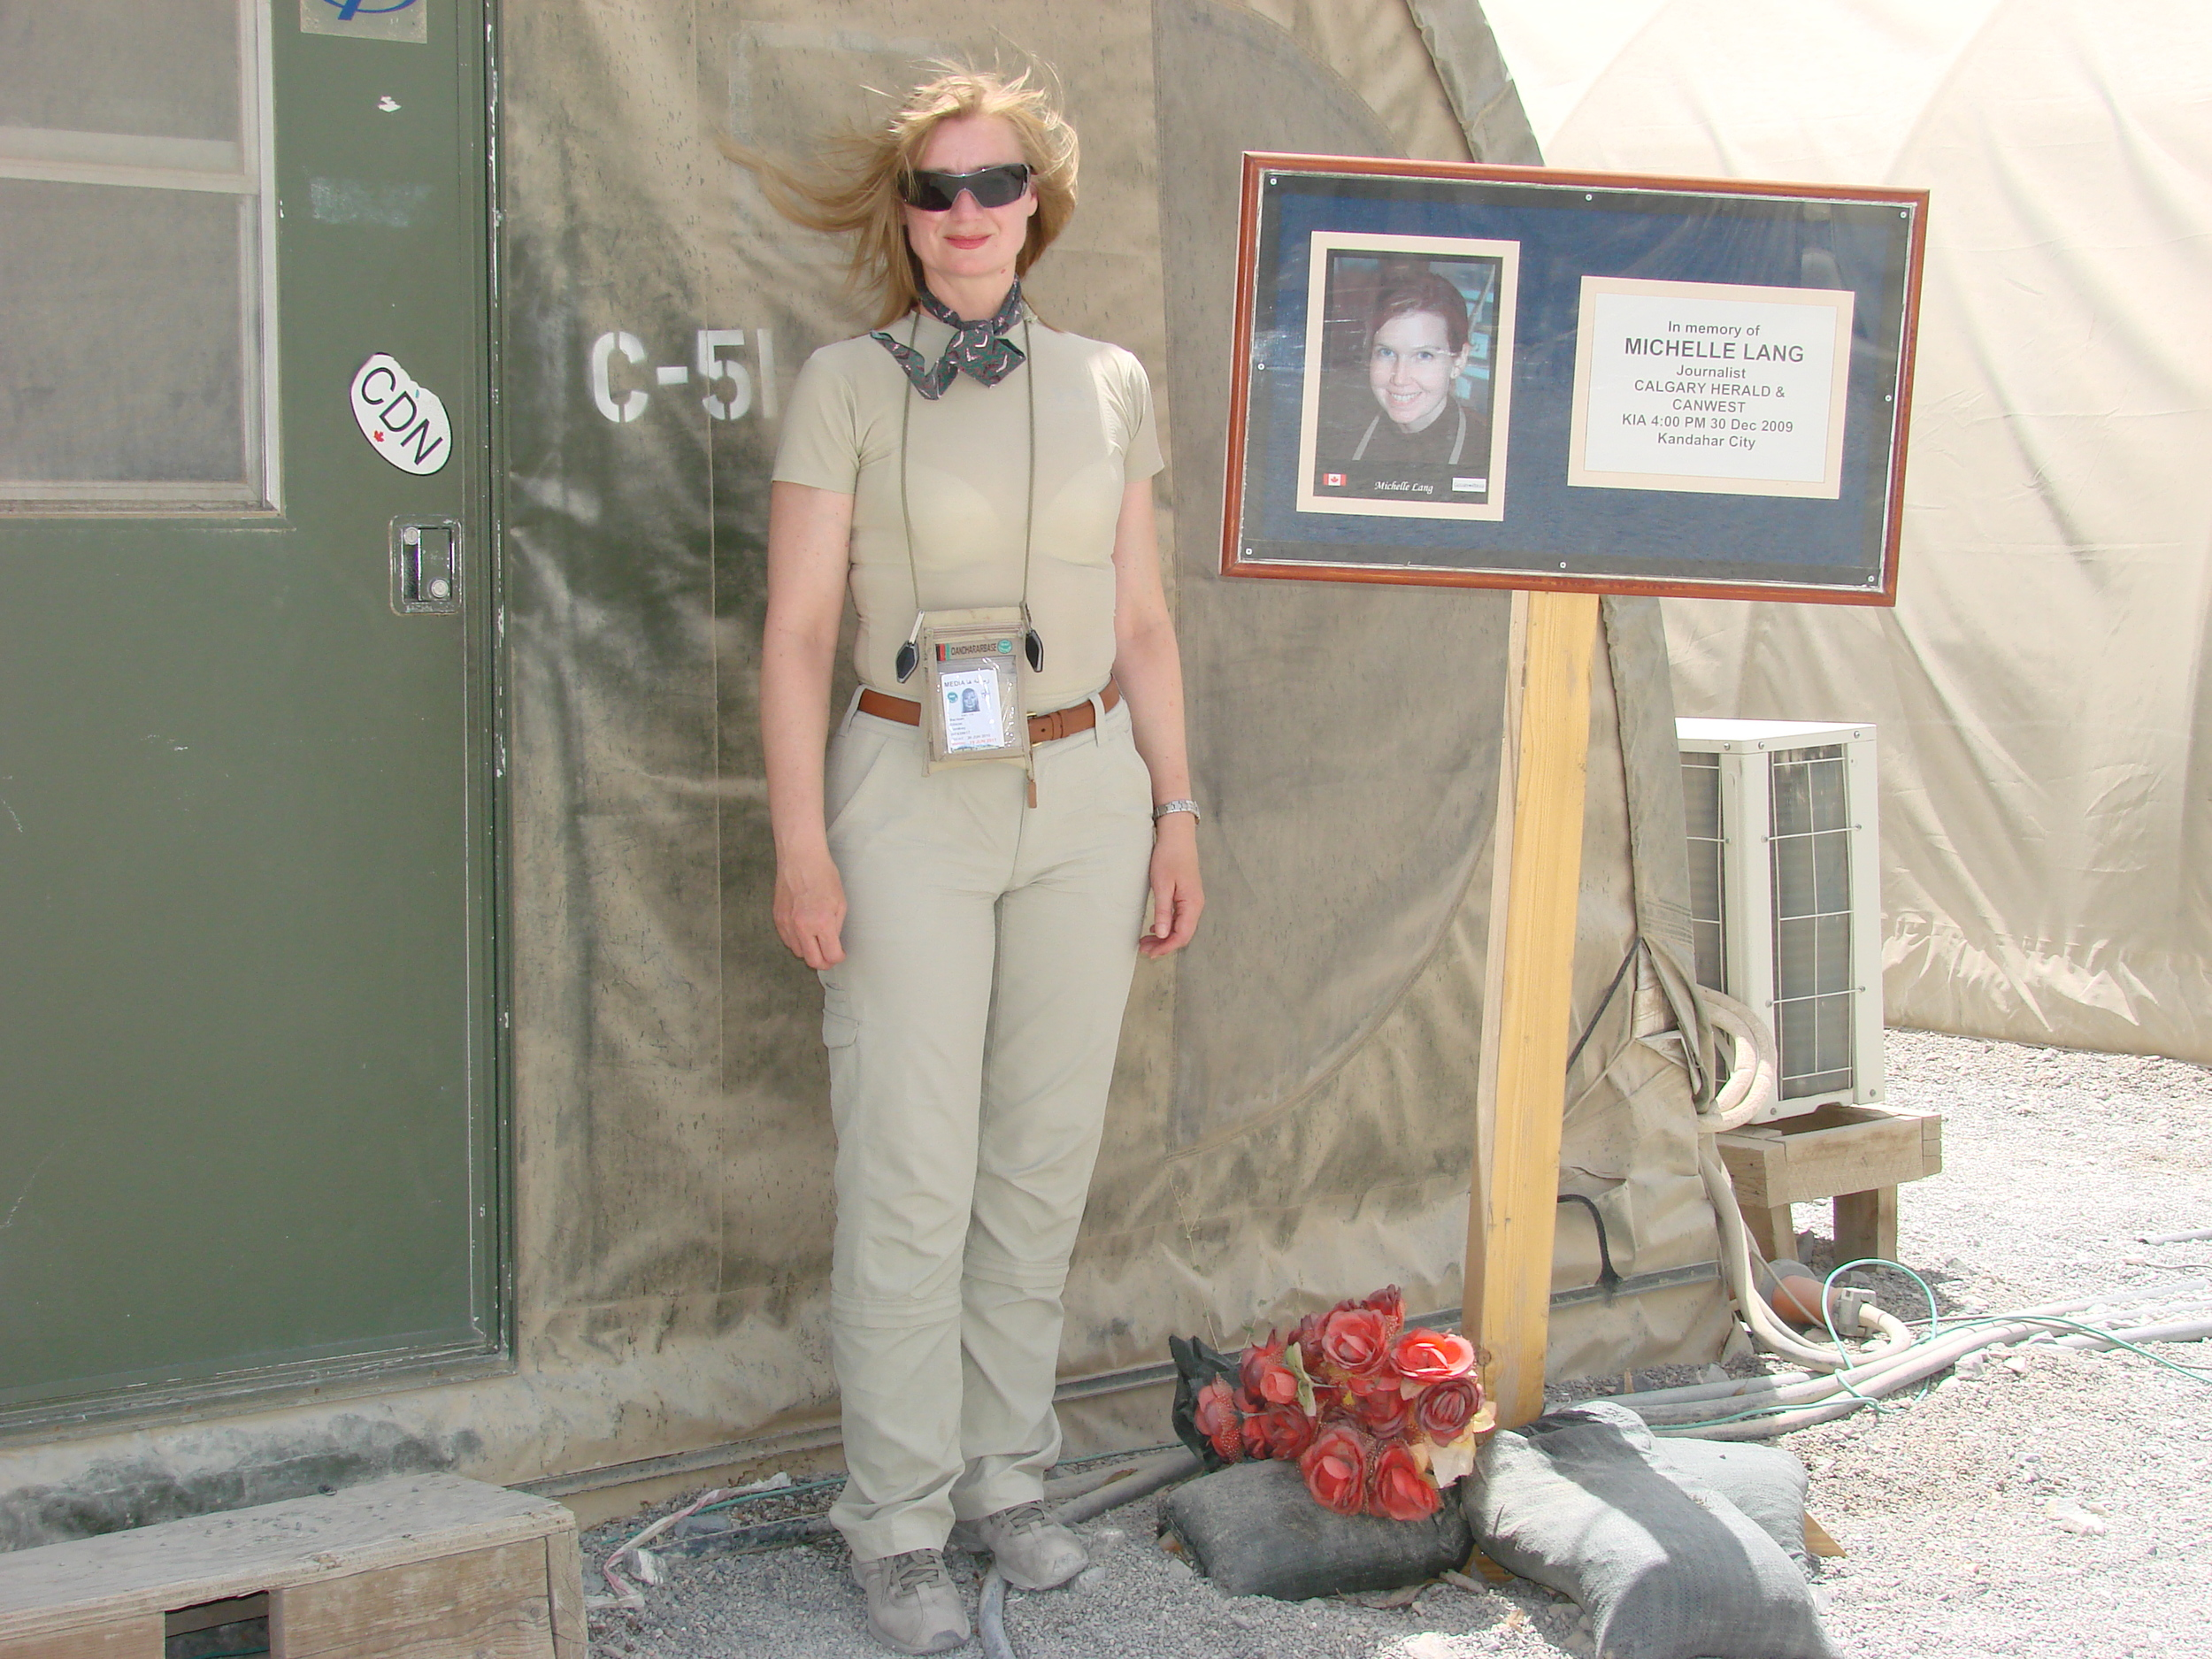 Media Tent in Kandahar. Honour the fallen, by supporting the living. Michelle Lang a great talent, a loss for Canada.